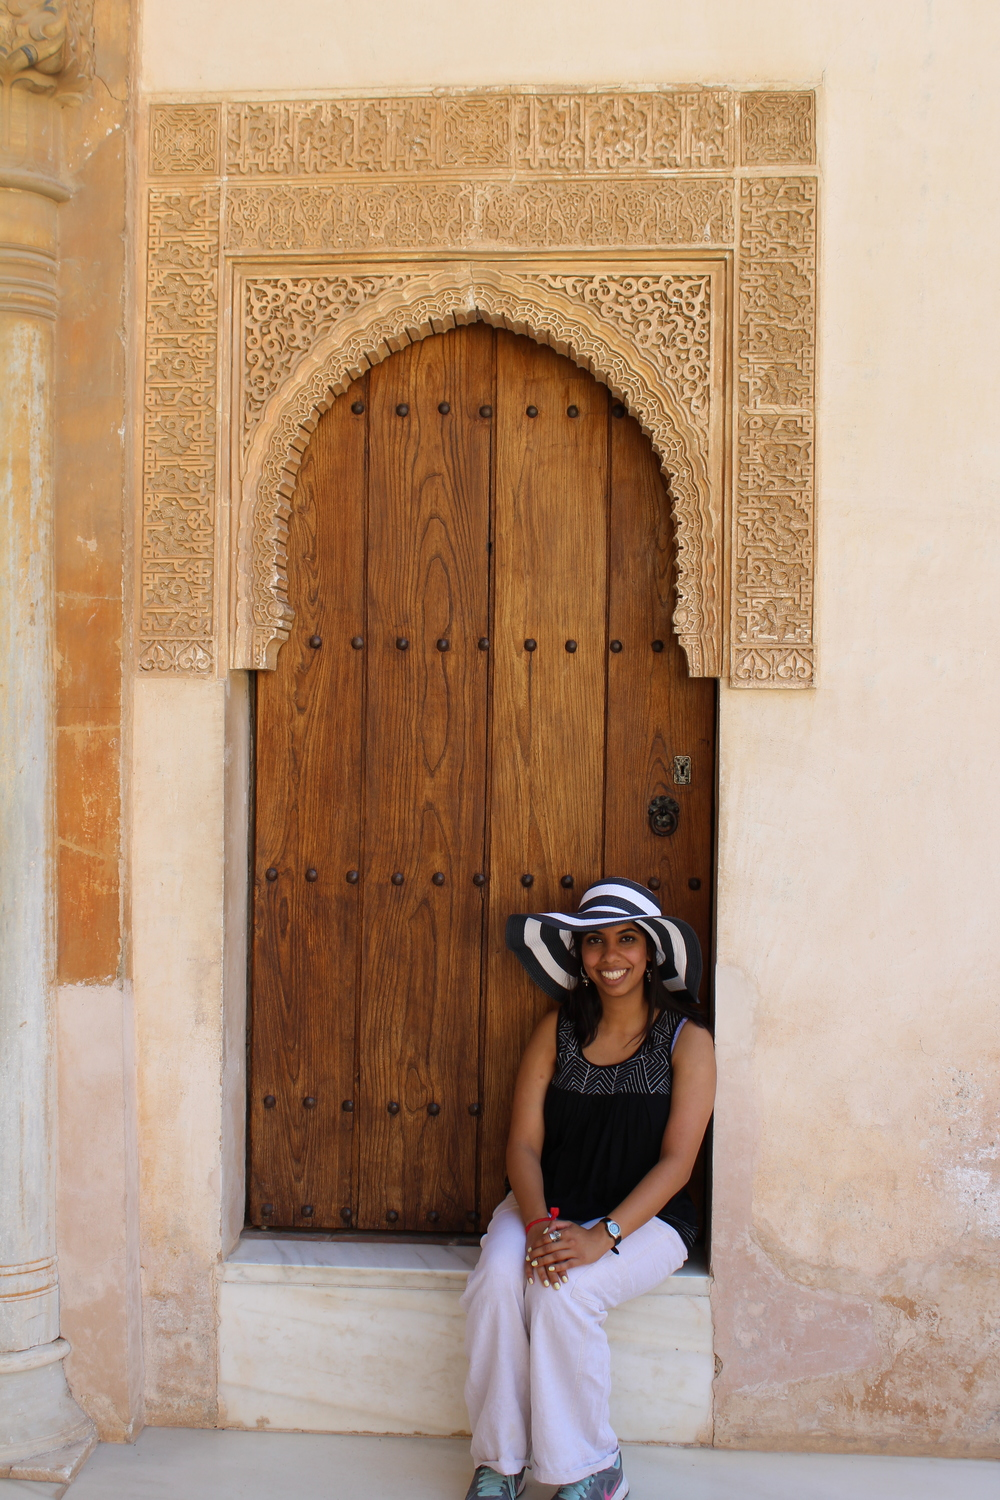 Meherin Huque (M2) traveled to Spain and Portugal this summer. This door is at Nasrid Palace in Alhambra. The doorway is intricately carved from marble.